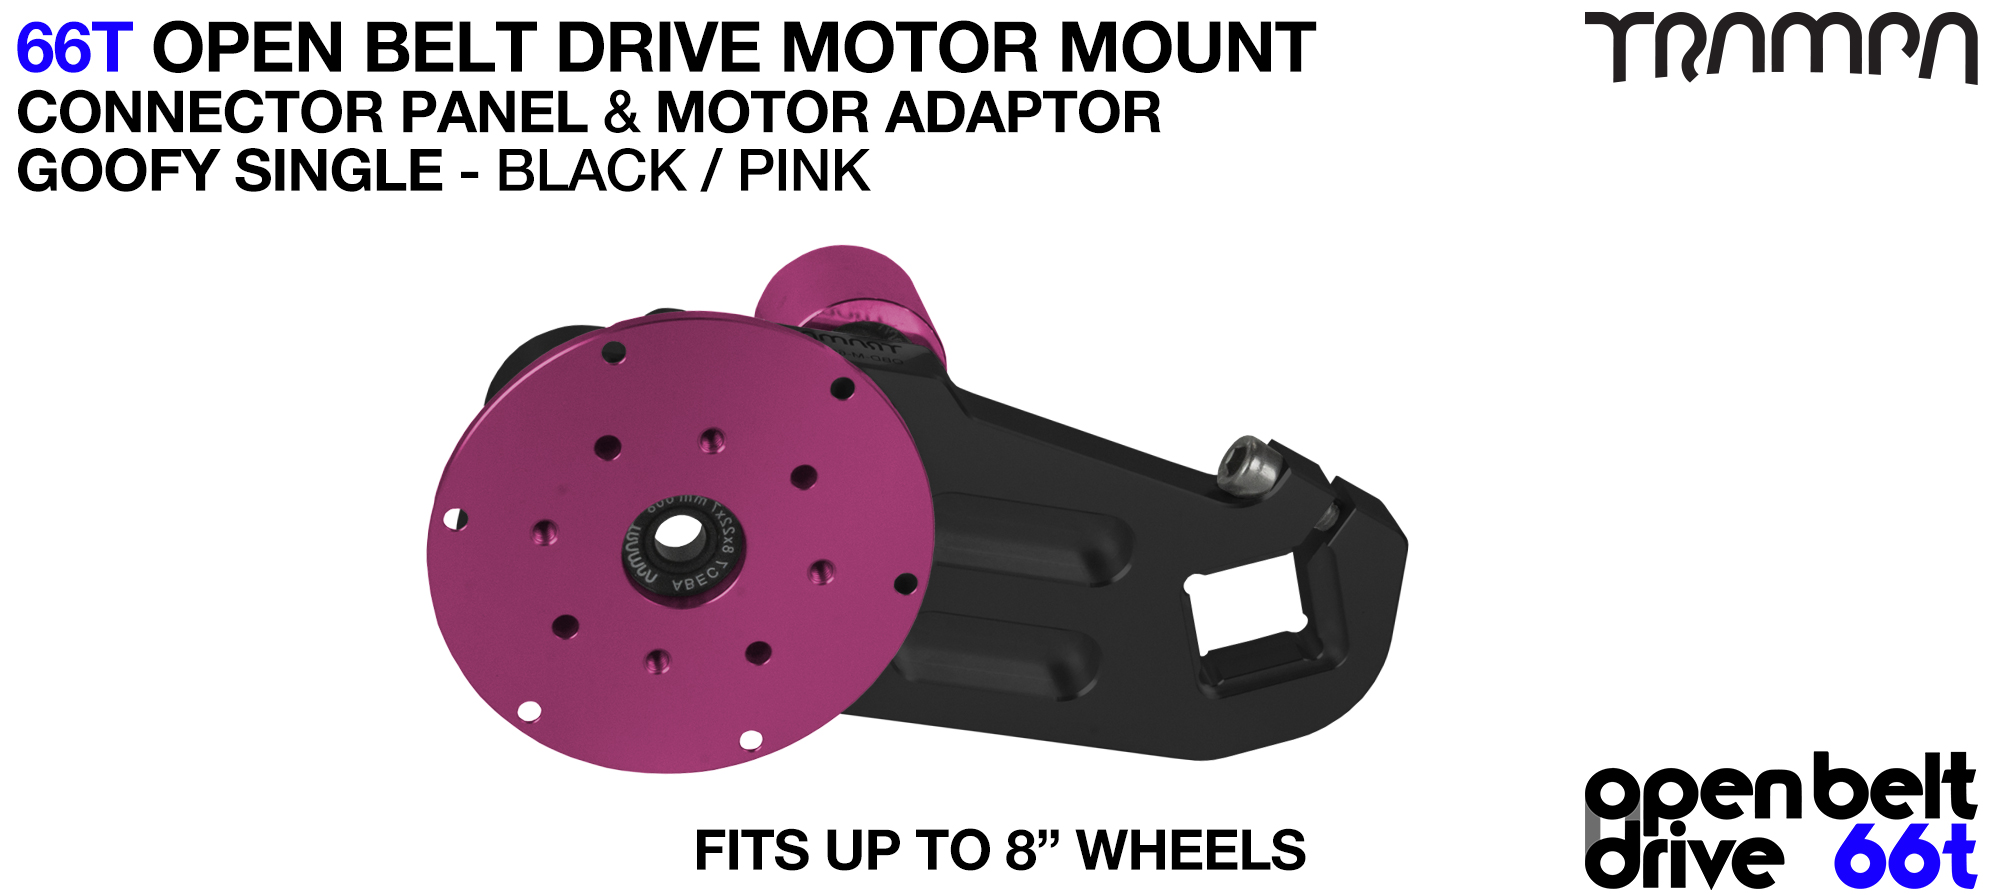 66T OPEN BELT DRIVE Motor Mount & Motor Adaptor - SINGLE PINK